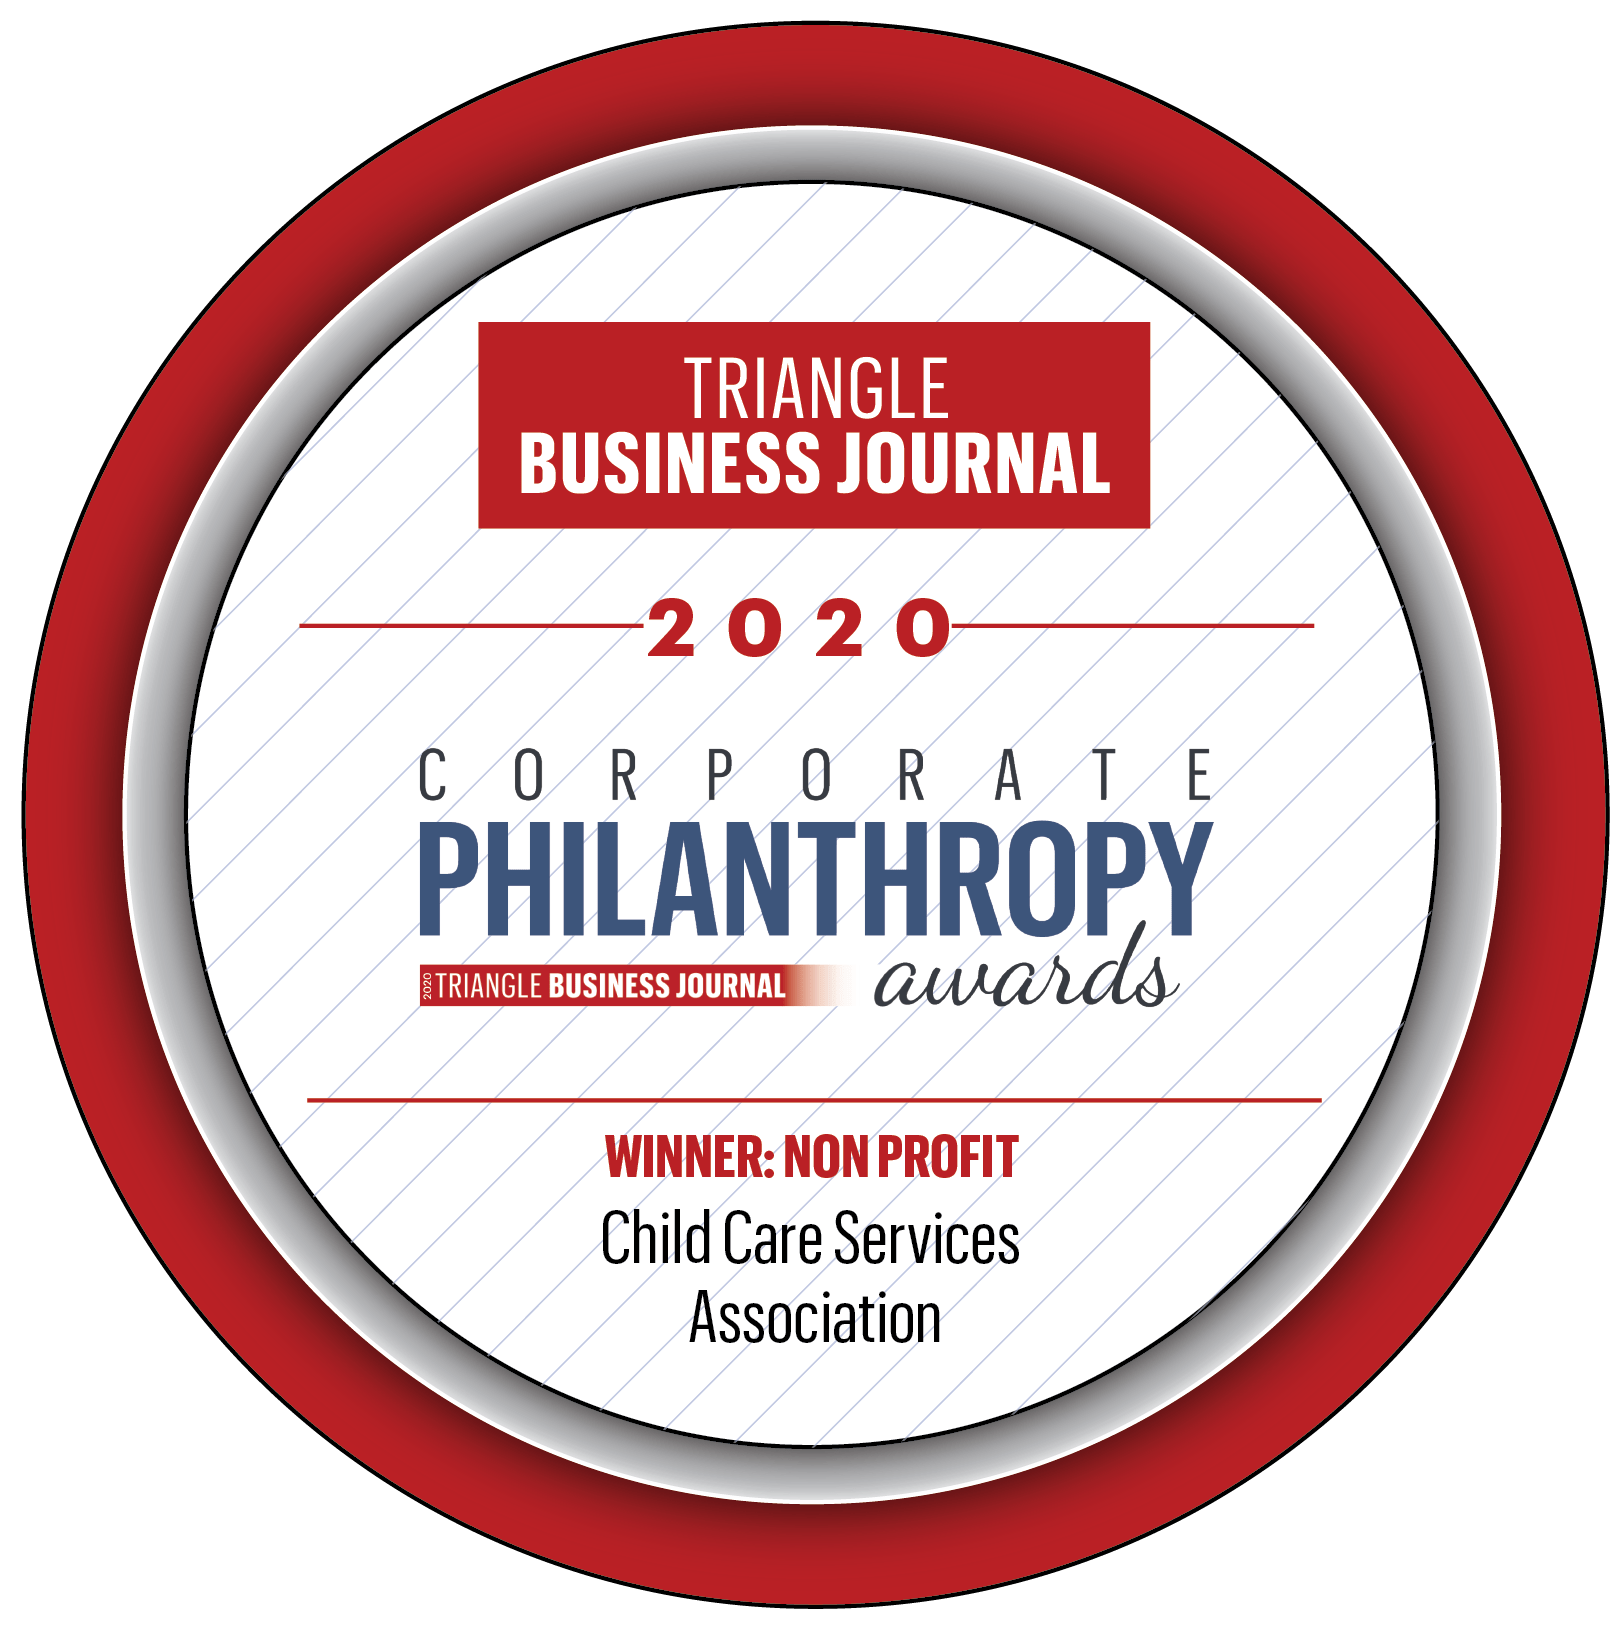 2020 Winner for Philanthropy button